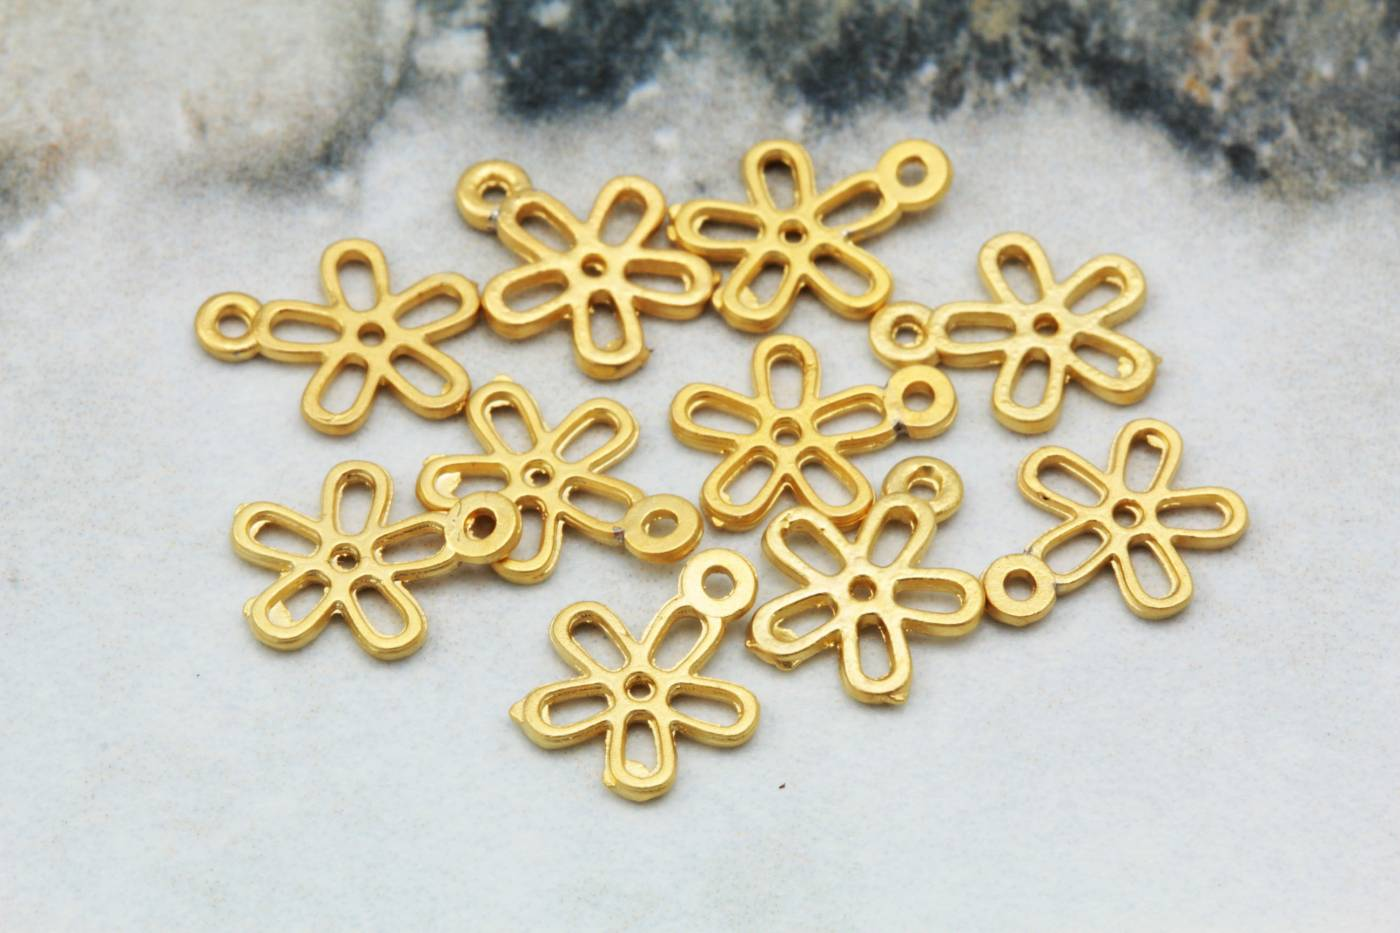 gold-tiny-daisy-metal-pendant-charms.jpg